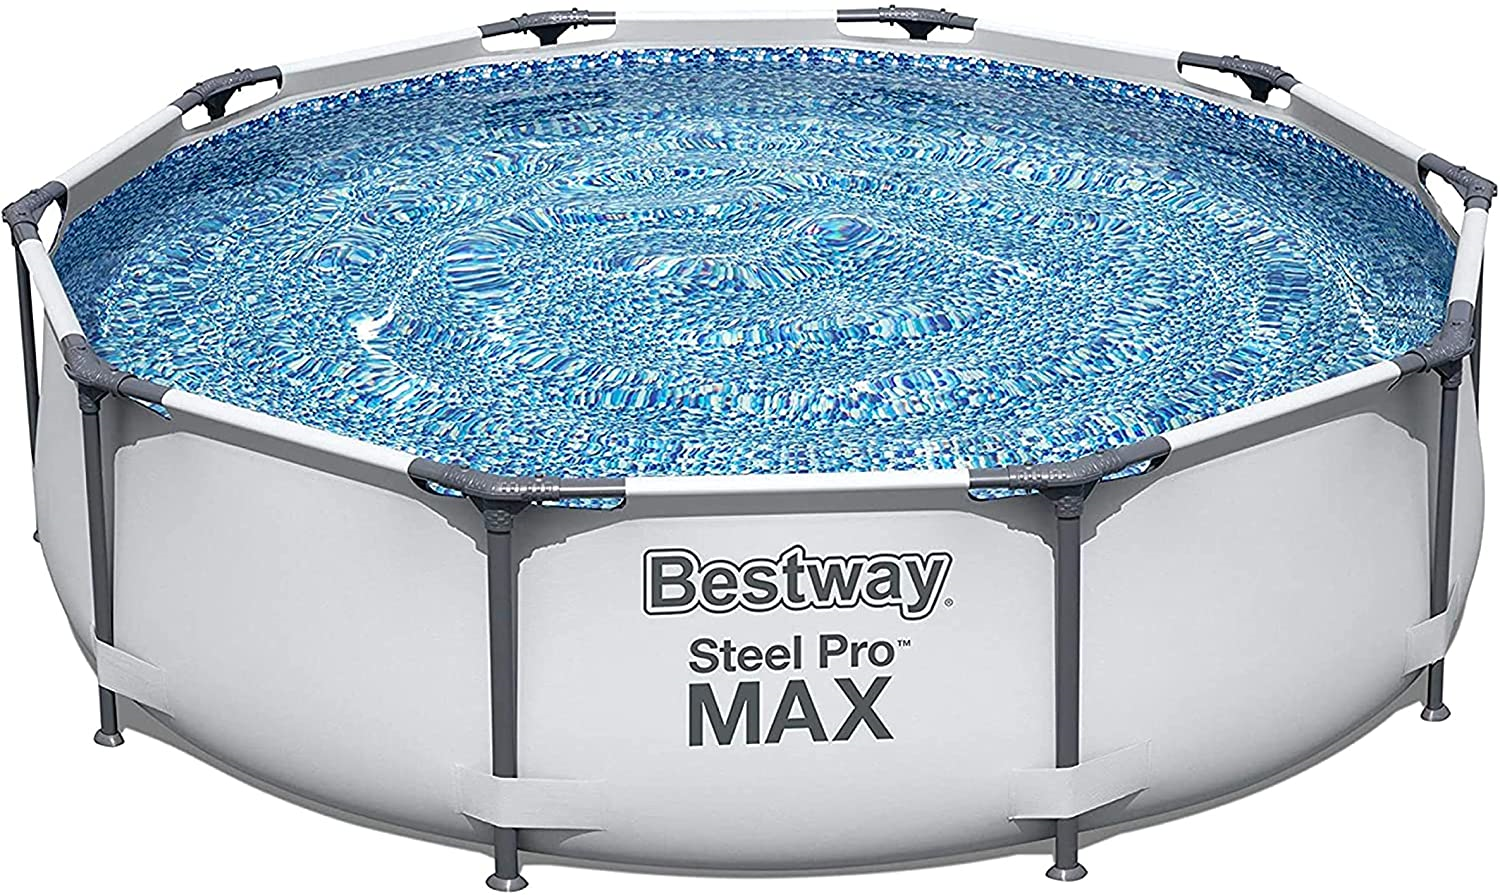 Bestway Swimming Pool Steel Pro MAX 56406 - FrameLink System - Easy to assemble